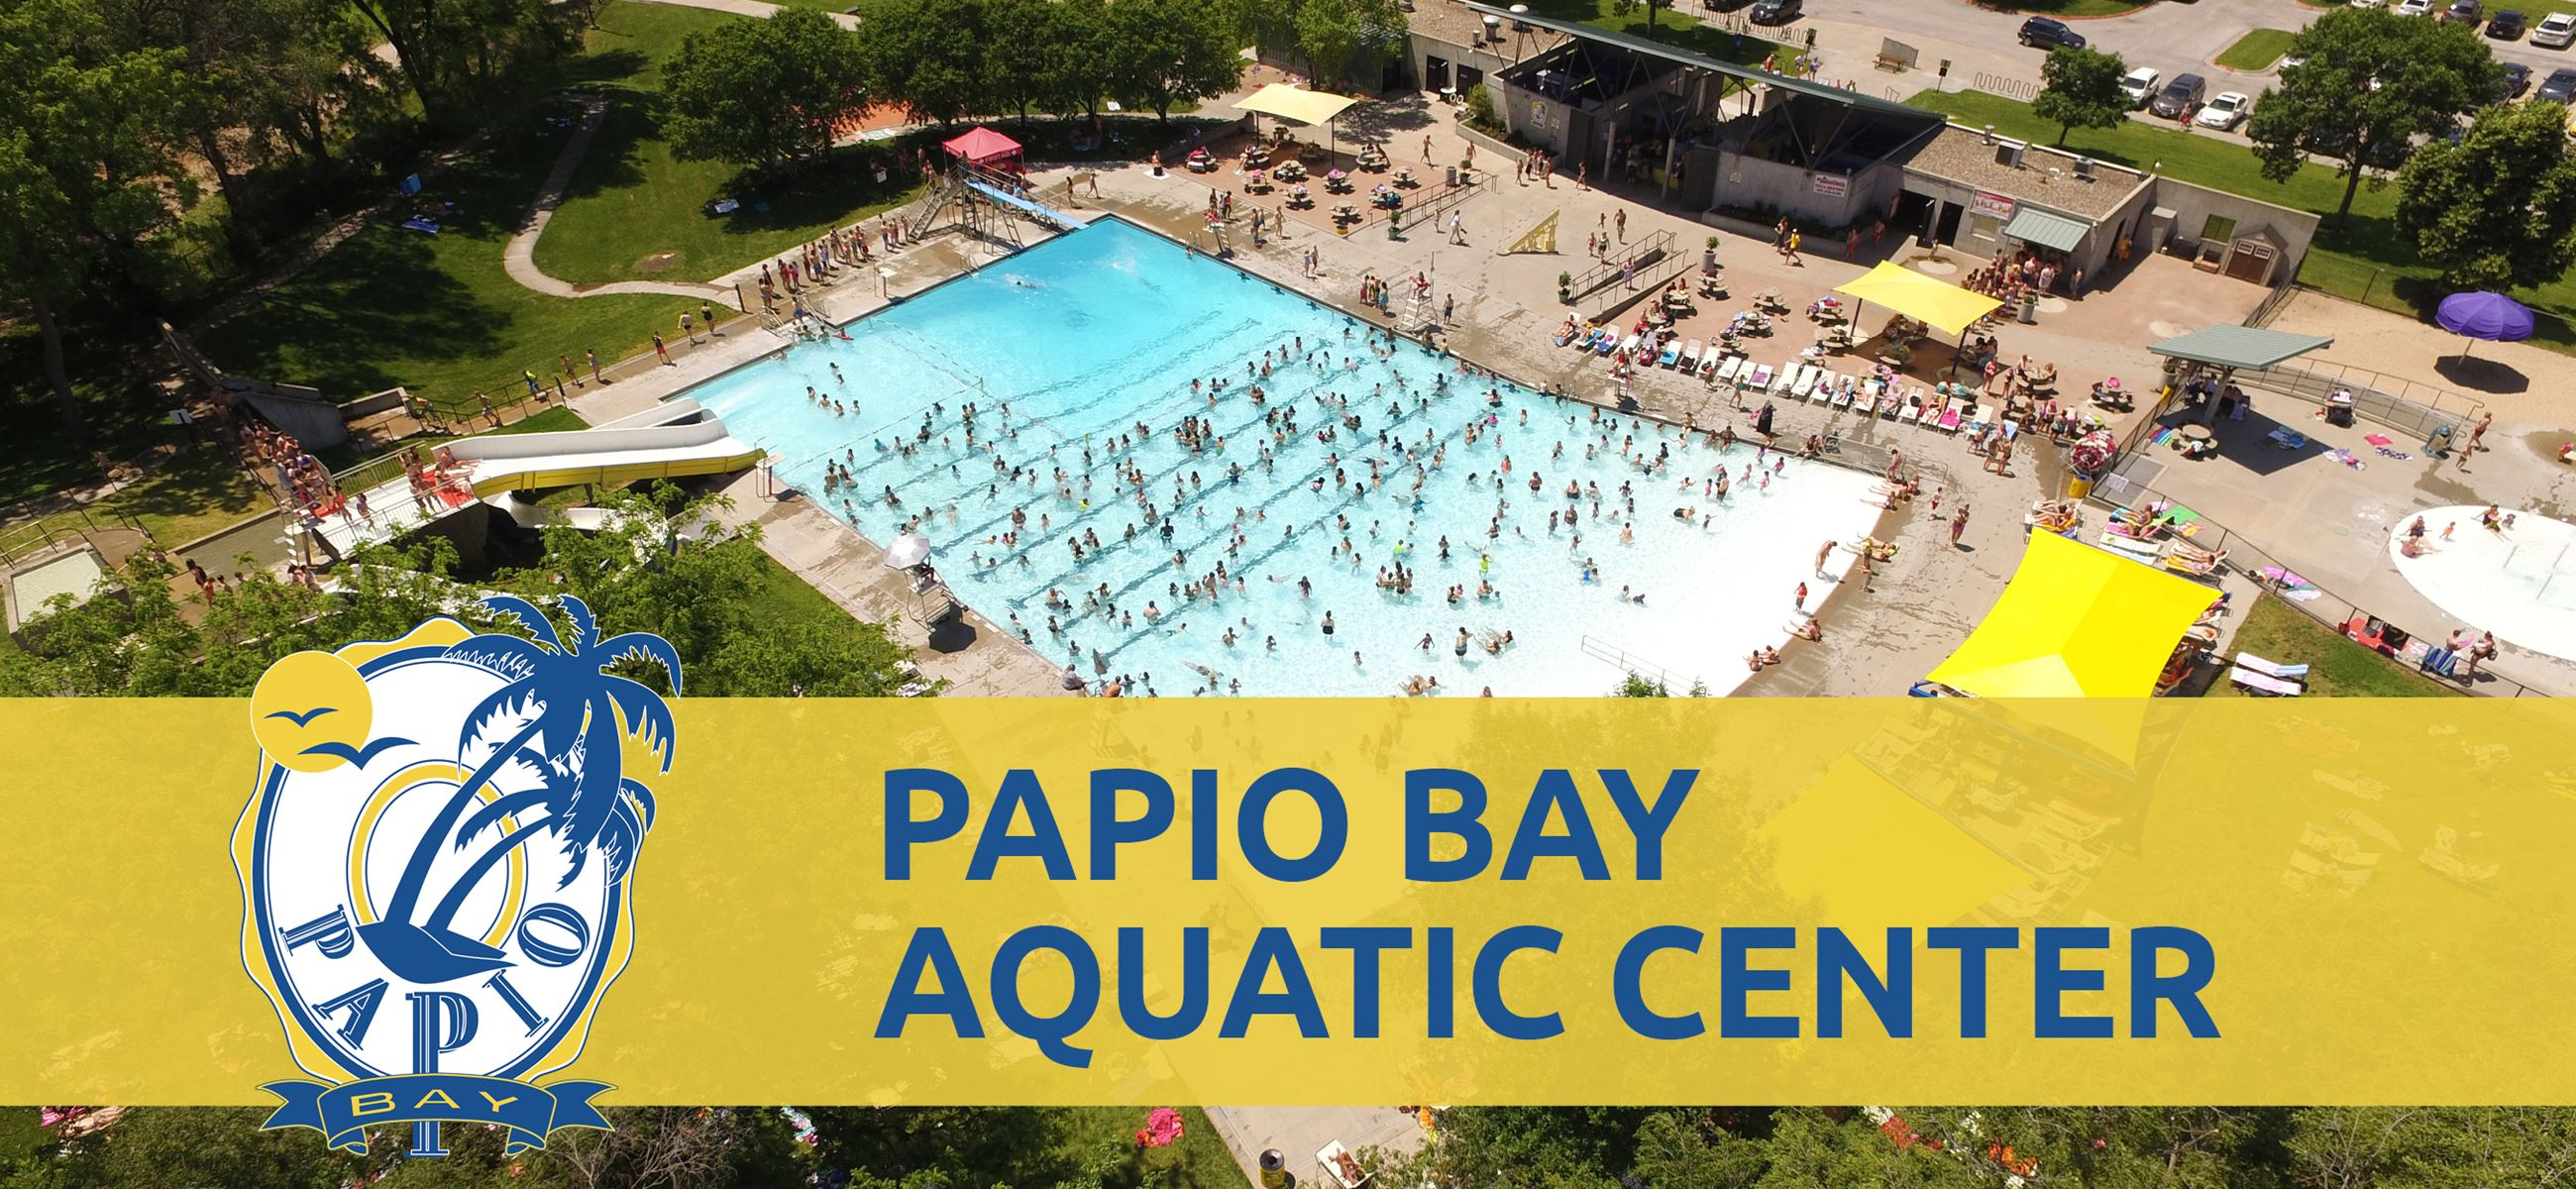 Papio Bay Aquatic Center